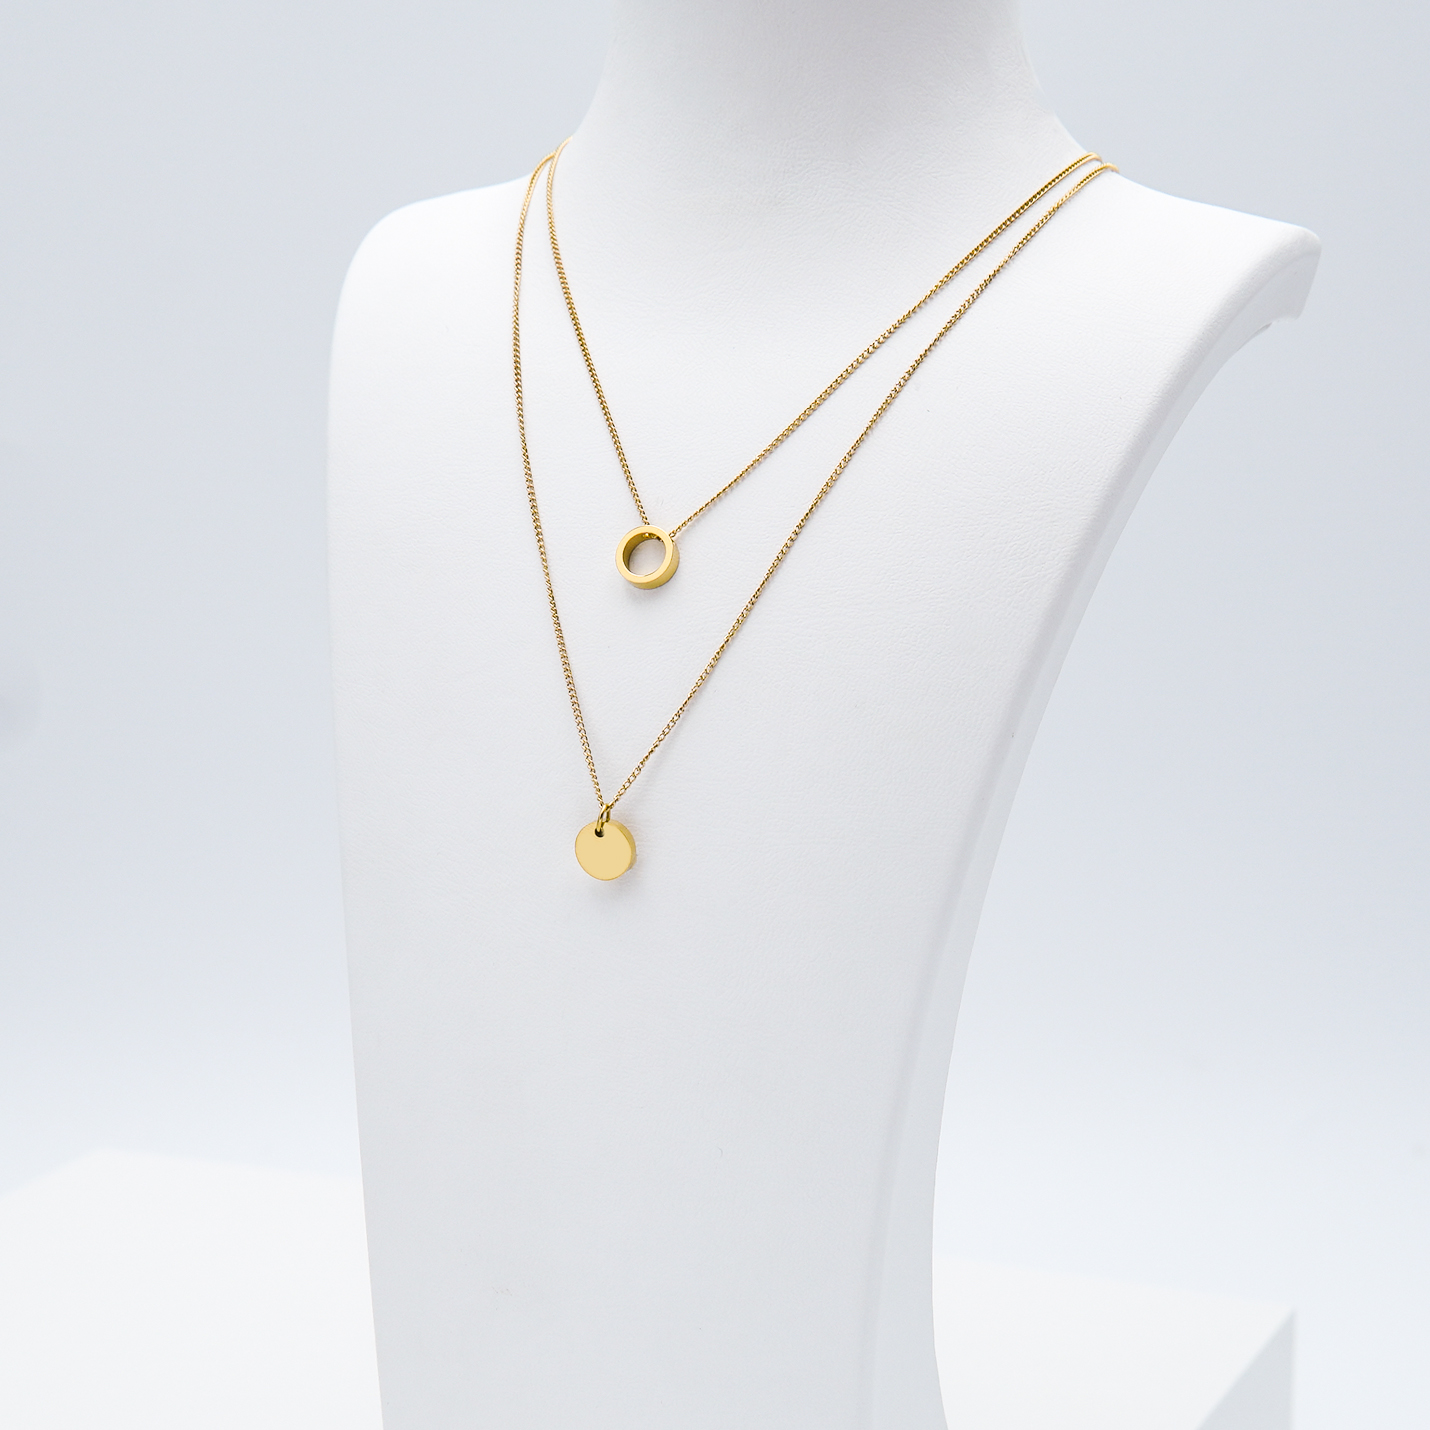 2- Just For You Gold Edition Halsband Modern and trendy Necklace and women jewelry and accessories from SWEVALI fashion Sweden